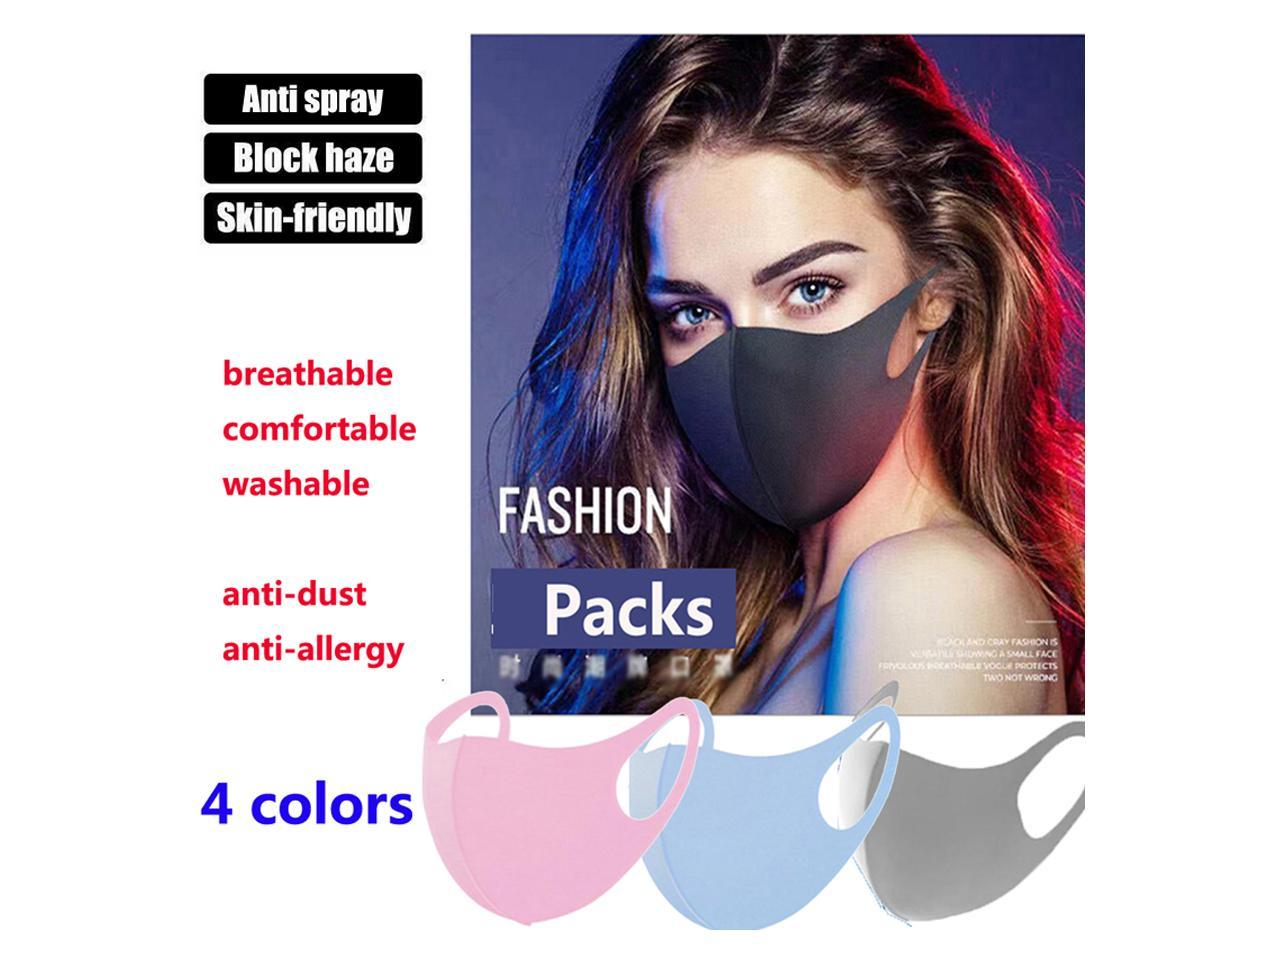 50 PC Disposable Cover Anti Pollution Cover Unisex Fabric Comfortable Disposable Face Cover Anti Dust Face Mouth Cover Windproof Cover